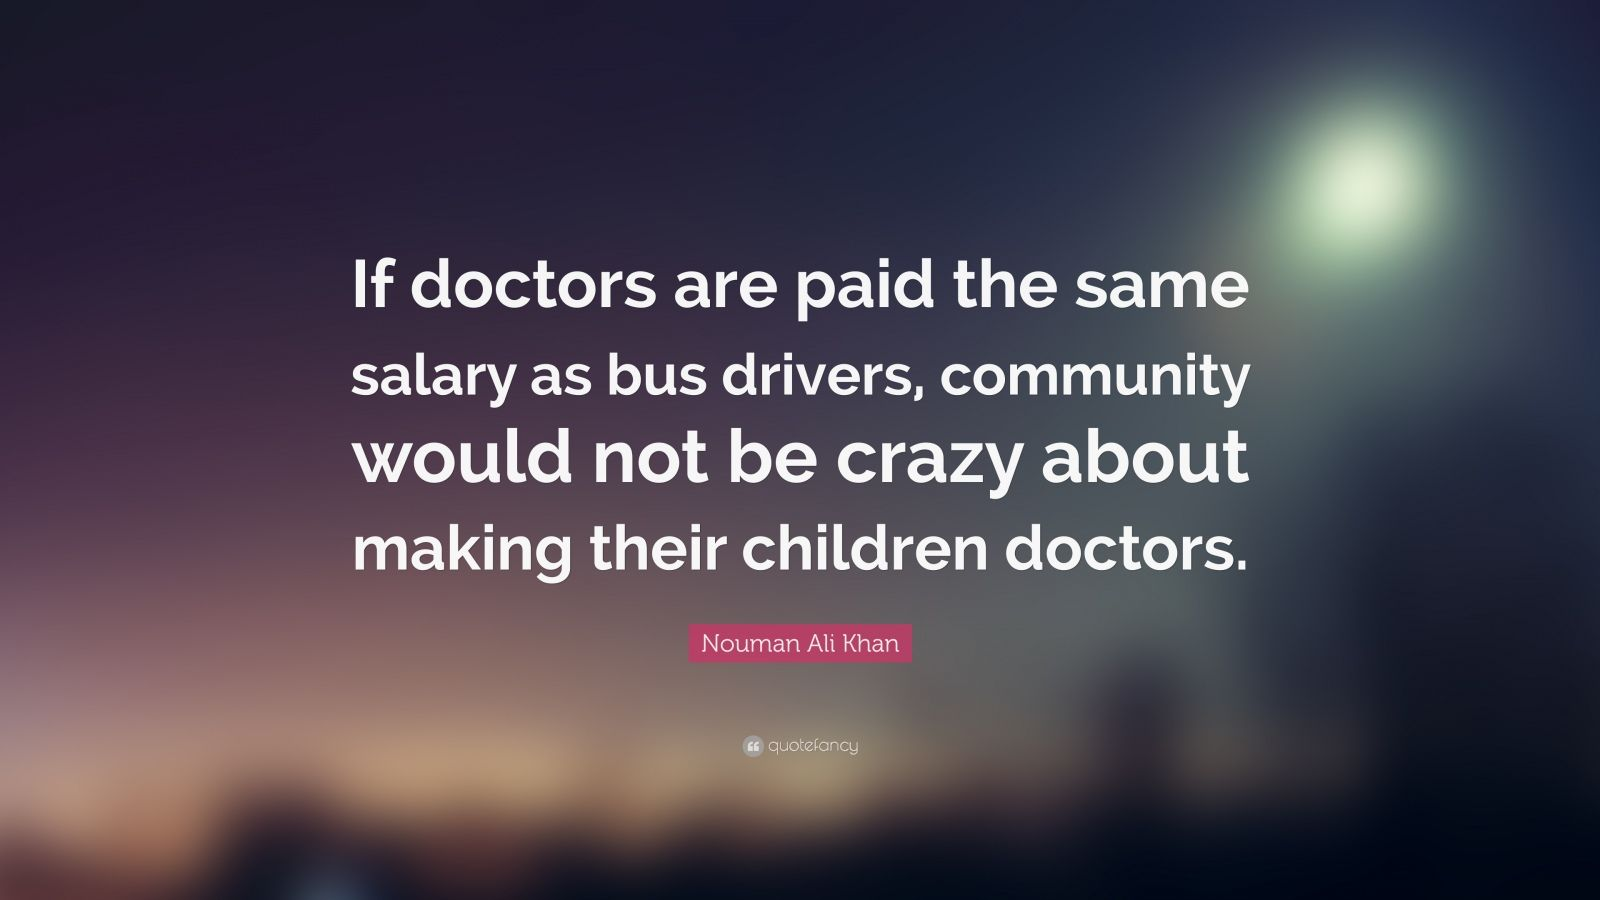 """Nouman Ali Khan Quote: """"If doctors are paid the same salary as bus drivers, community would not be crazy about making their children doctors."""""""